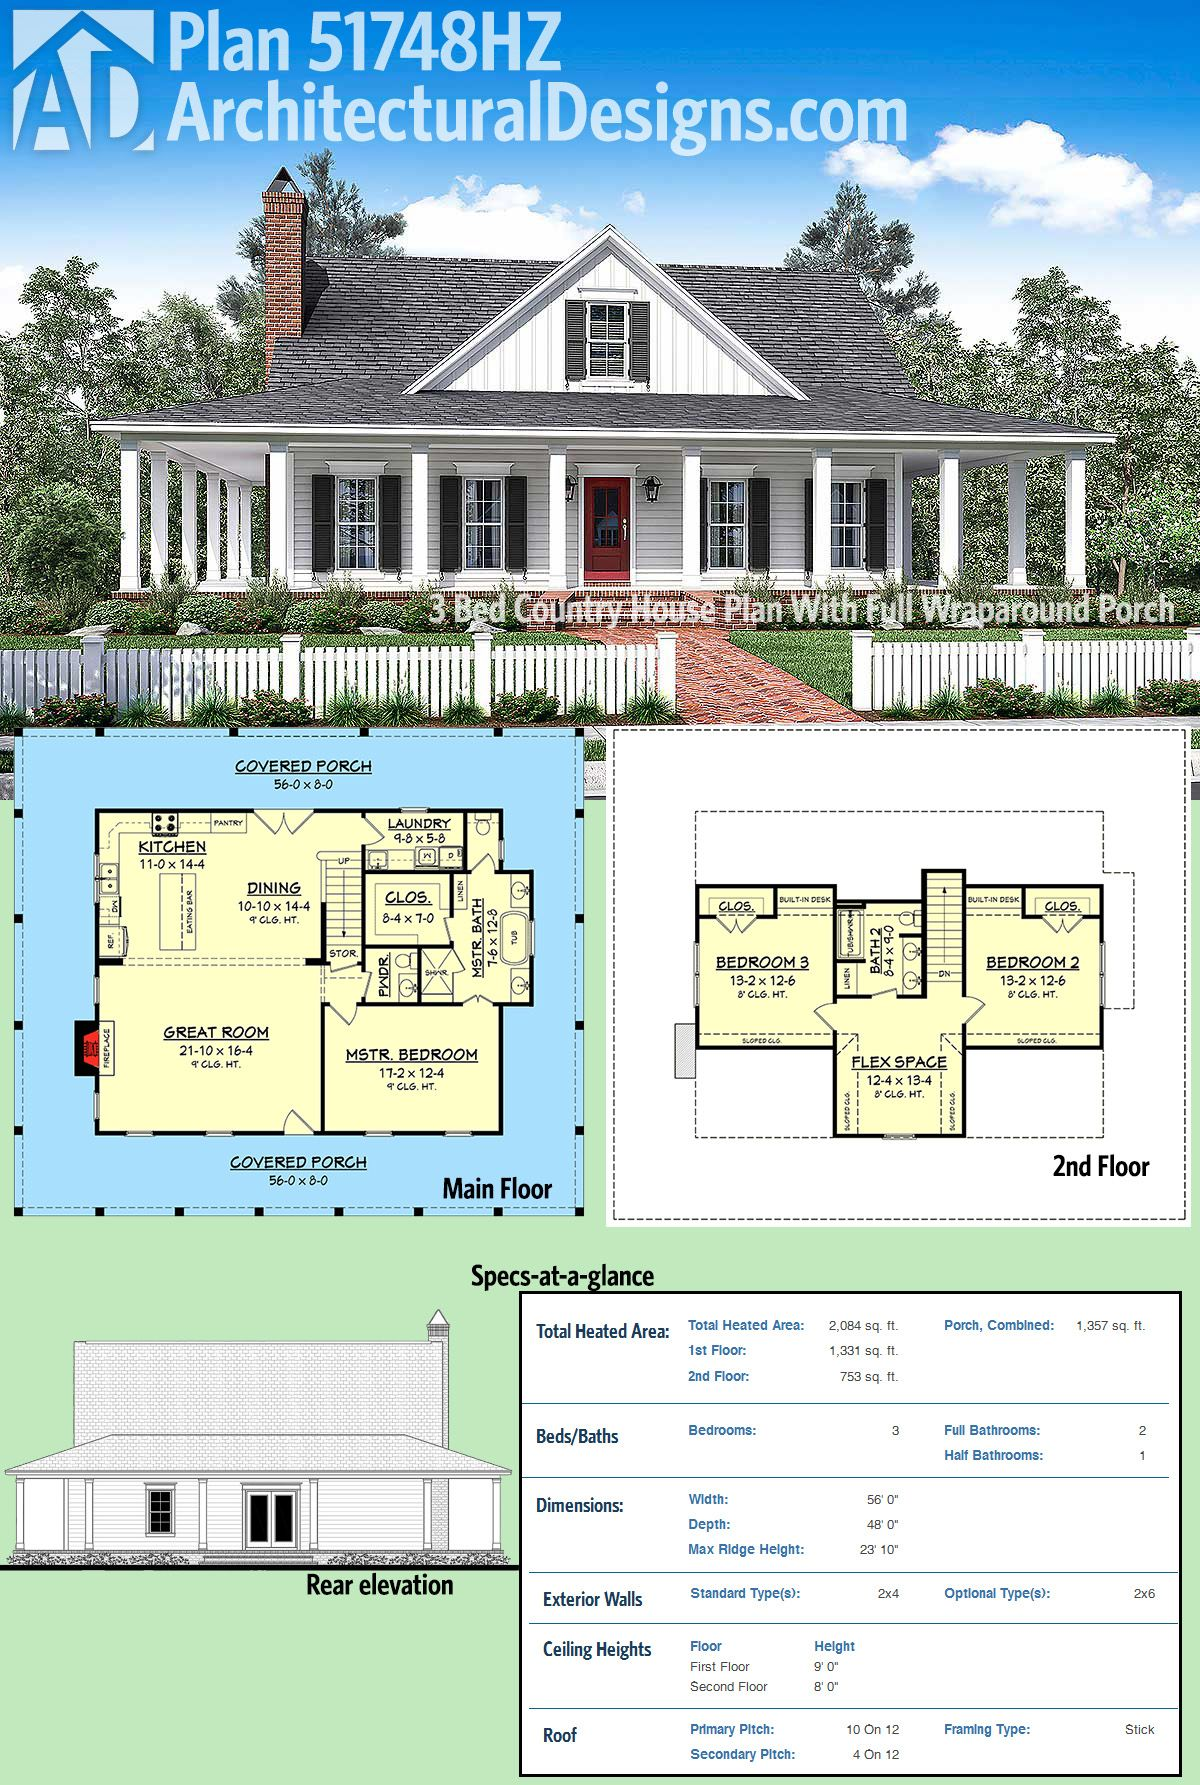 Architectural Designs House Plan 51748HZ Gives You A Full Wraparound Porch  Outside And An Open Concept Floor Plan Inside. Ready When You Are.